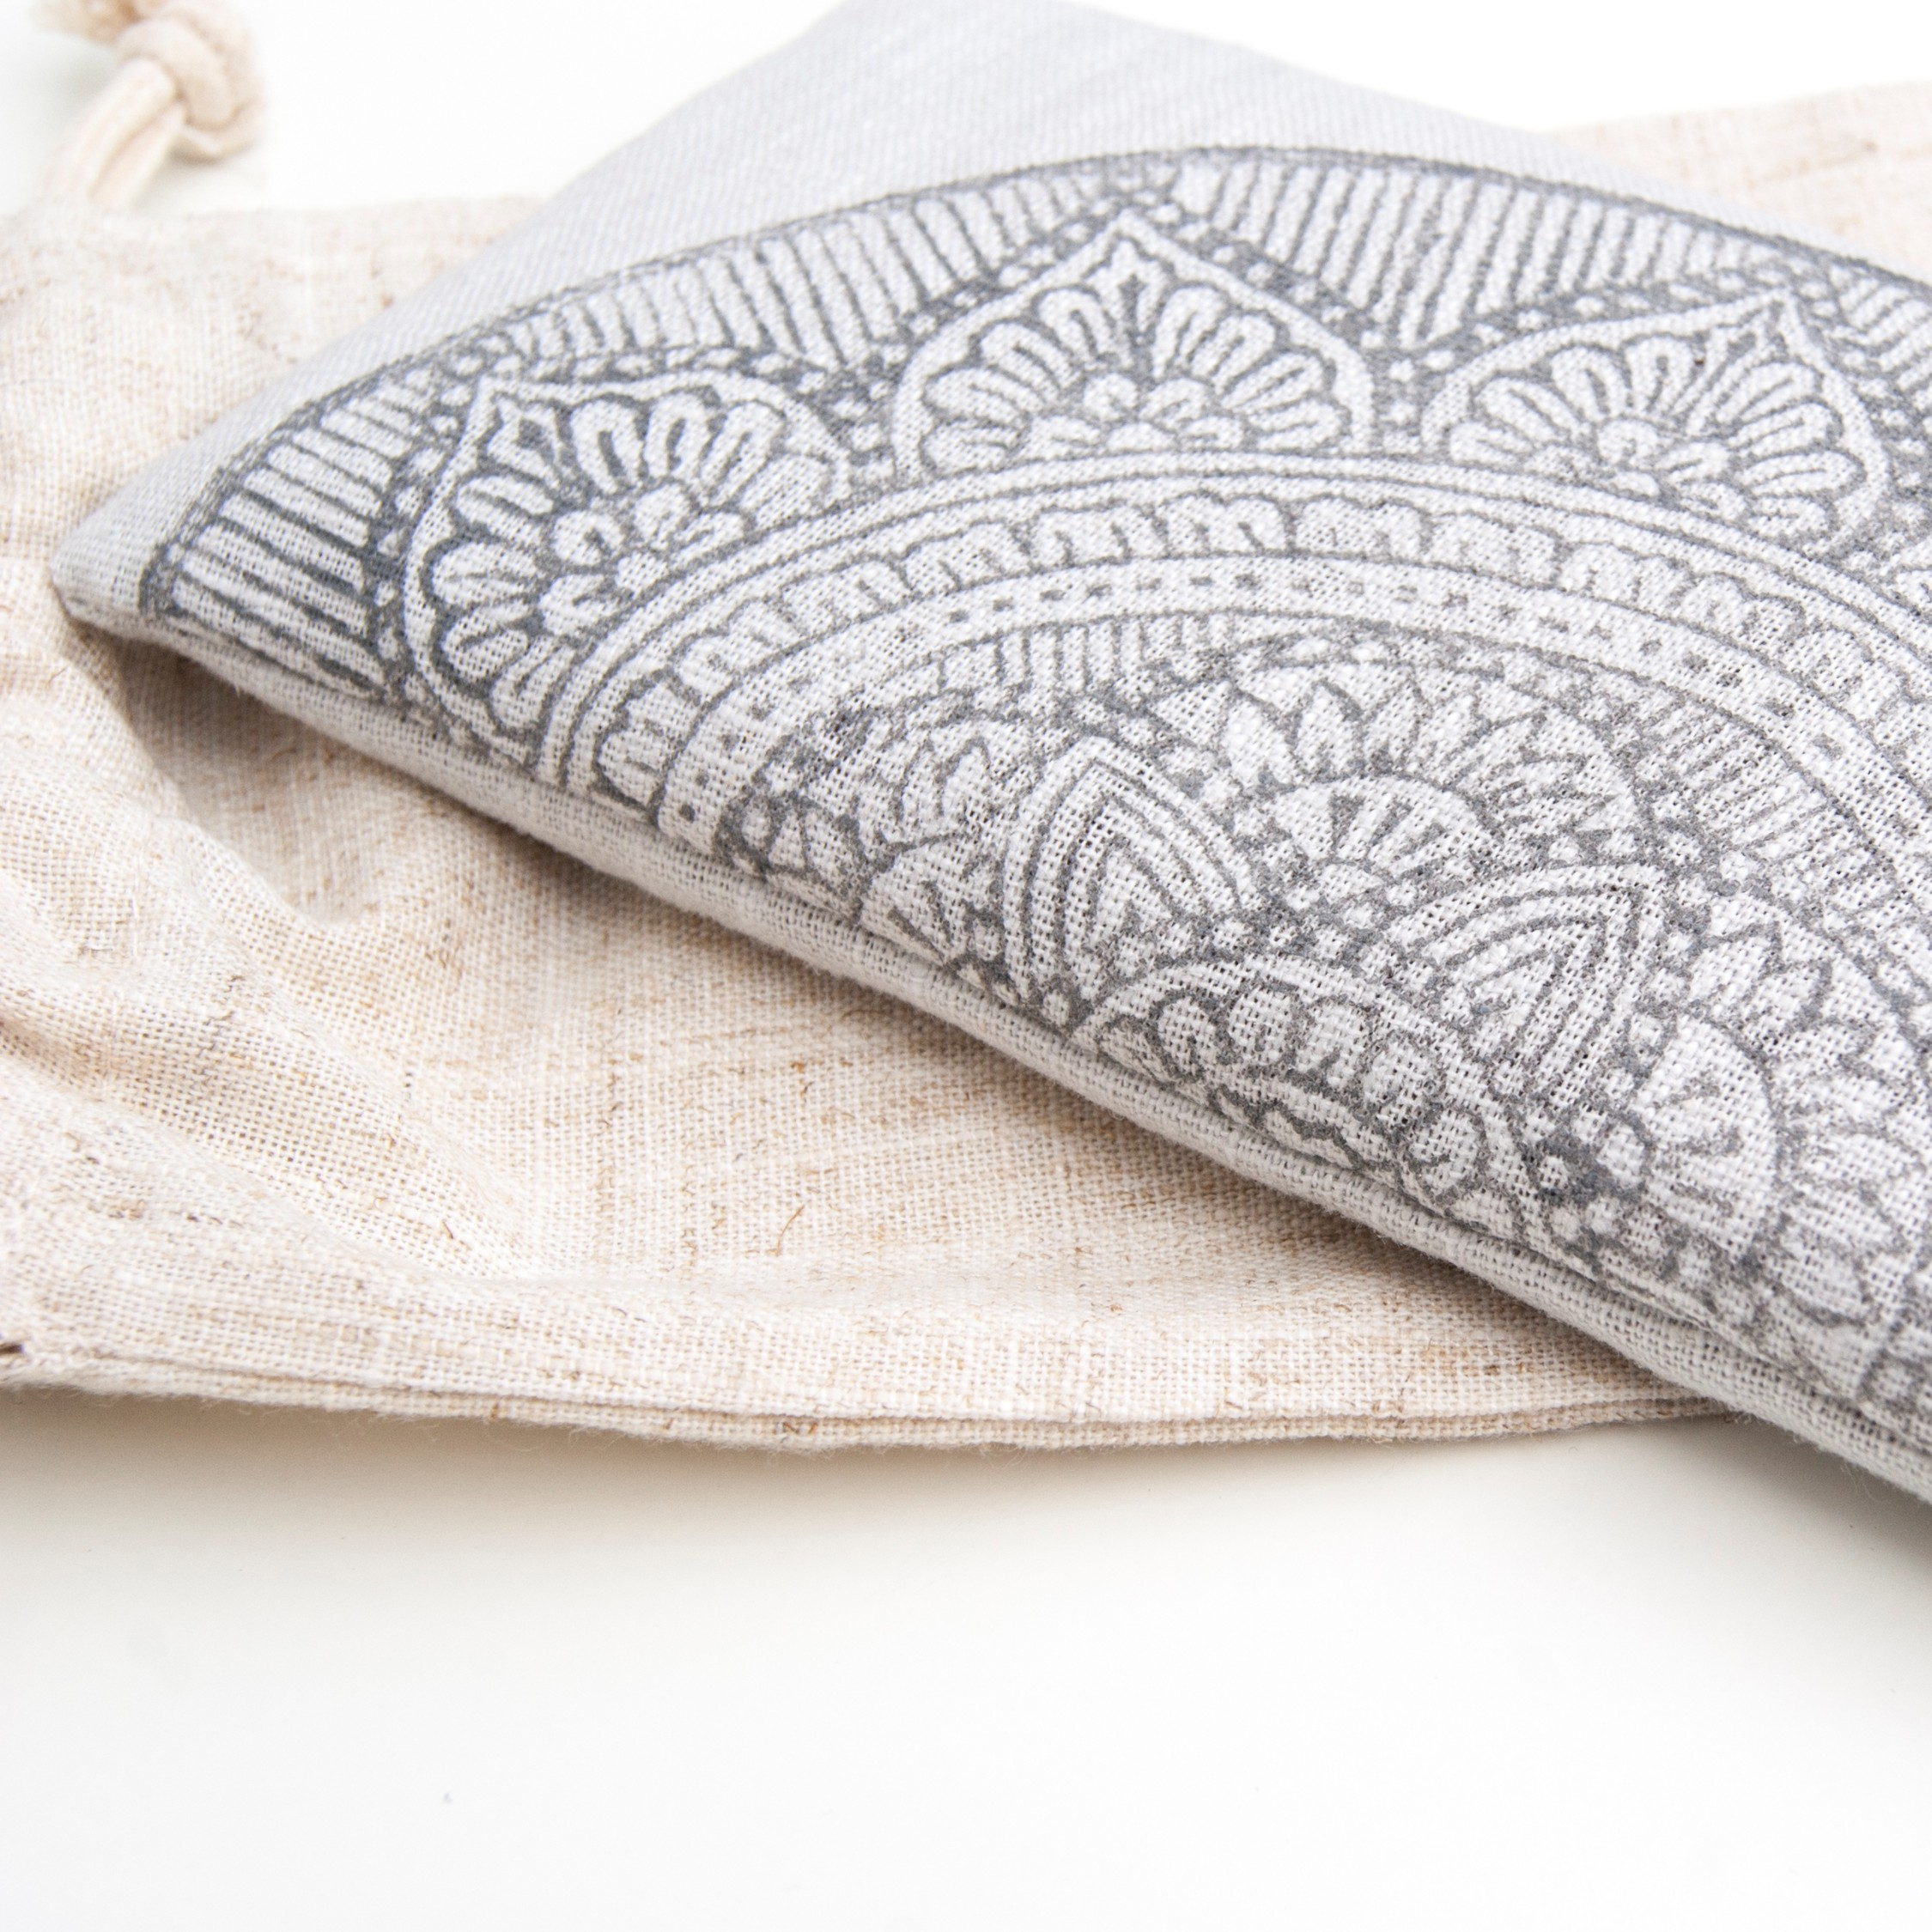 Eye pillow Mandala in light gray, 100% non toxic flax linen by Pure Prana Label